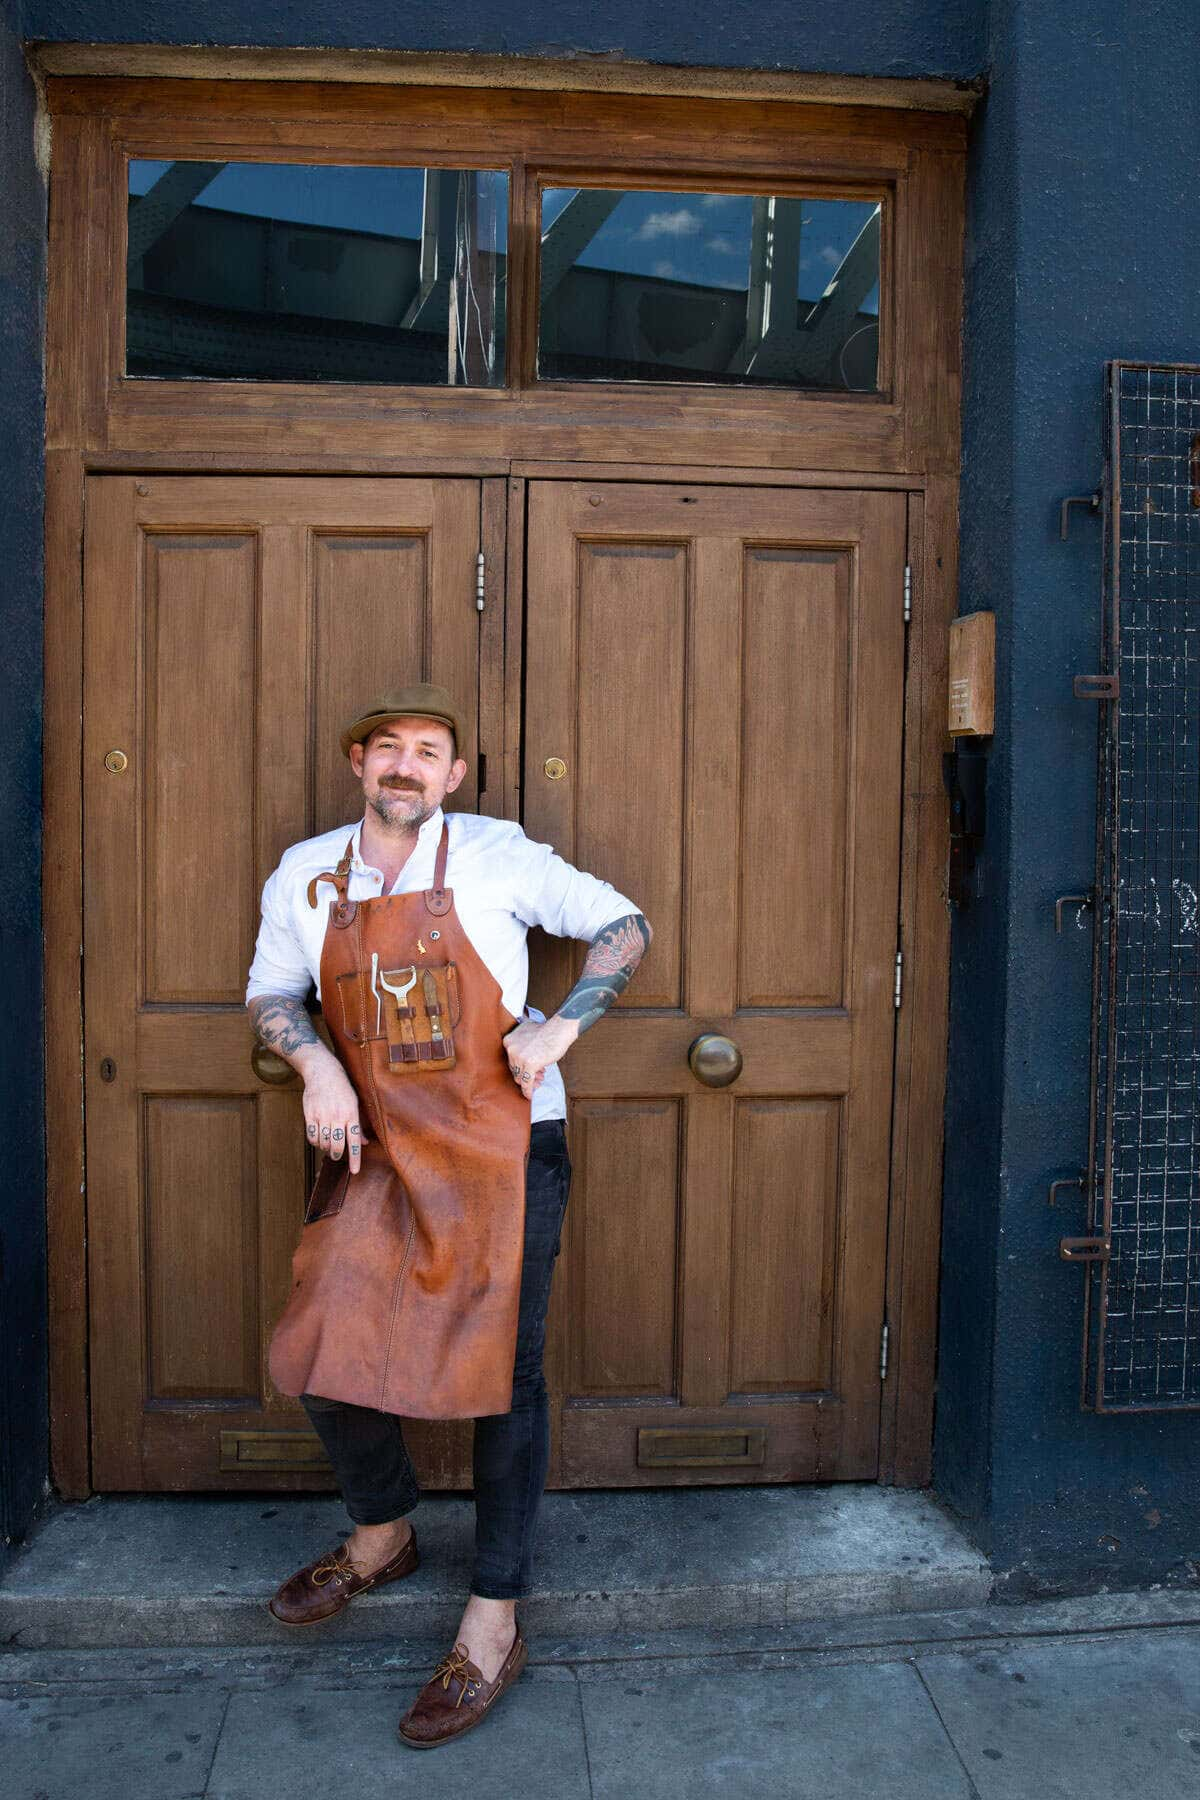 A portrait of a bartender in his apron stood in front of some large wooden doors.